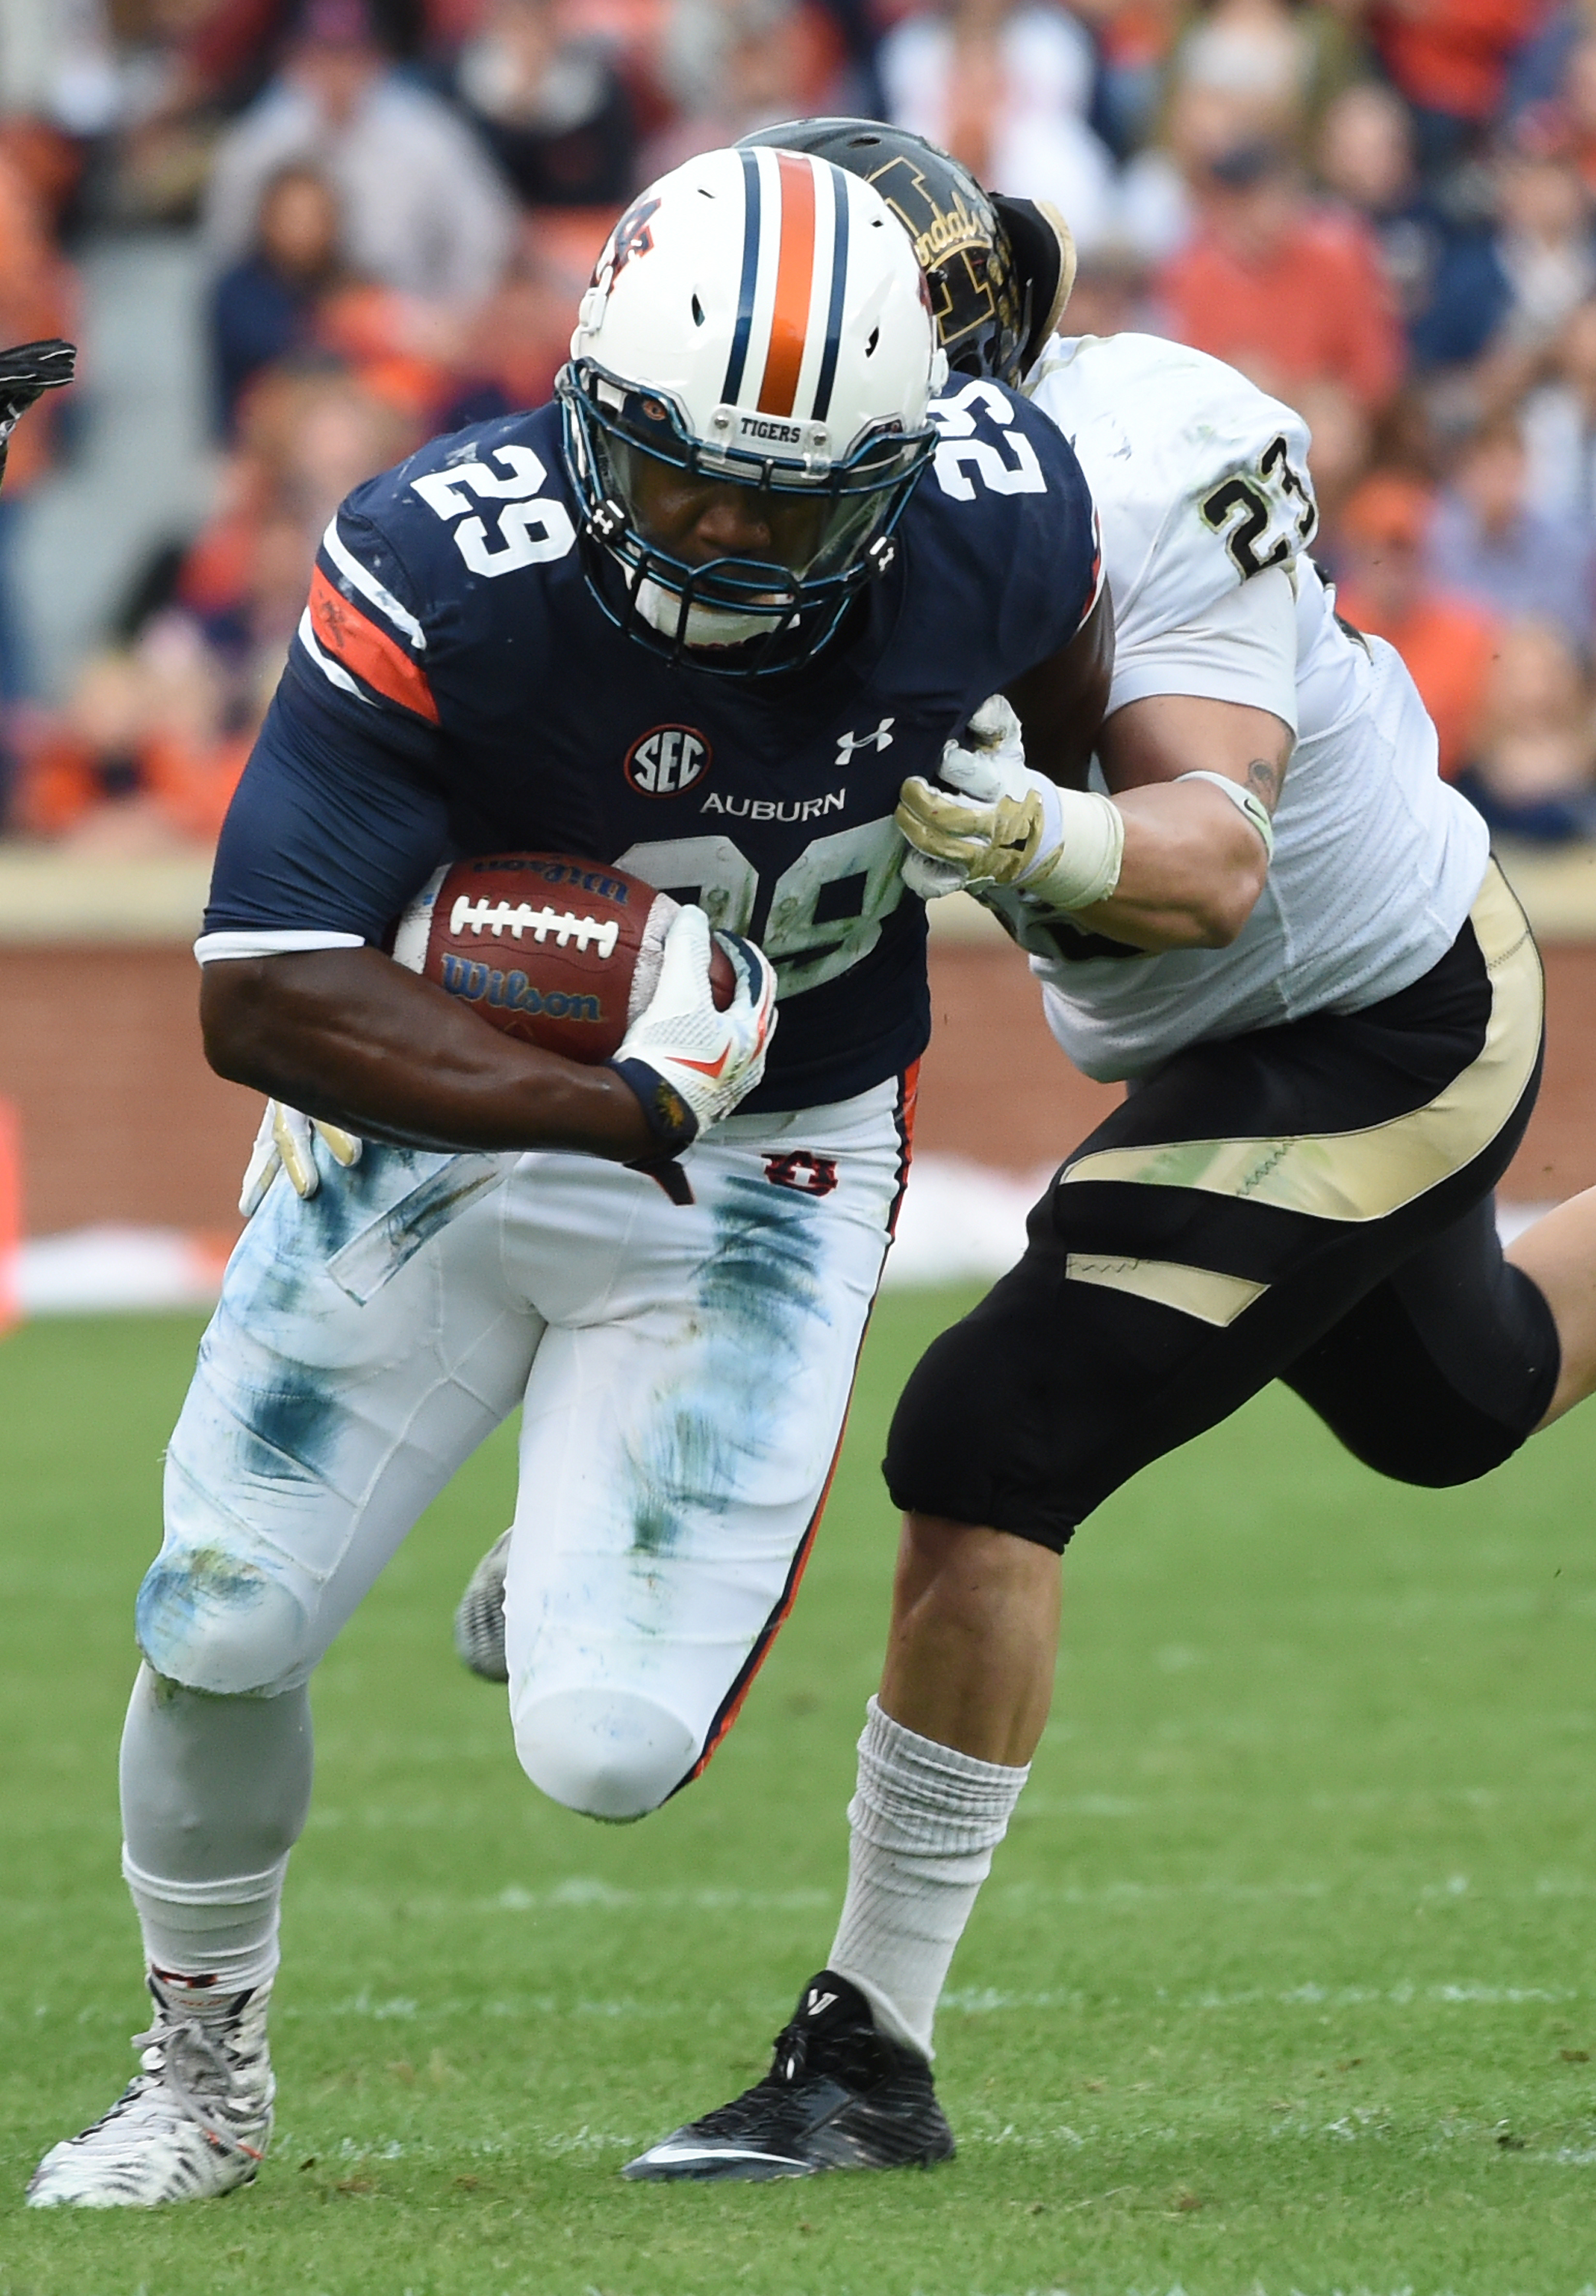 Auburn running back Jovon Robinson breaks away from Idaho linebacker Marc Millan during the first half of an NCAA football game, Saturday, Nov. 21, 2015, in Auburn, Ala. (AP Photo/Mark Almond)